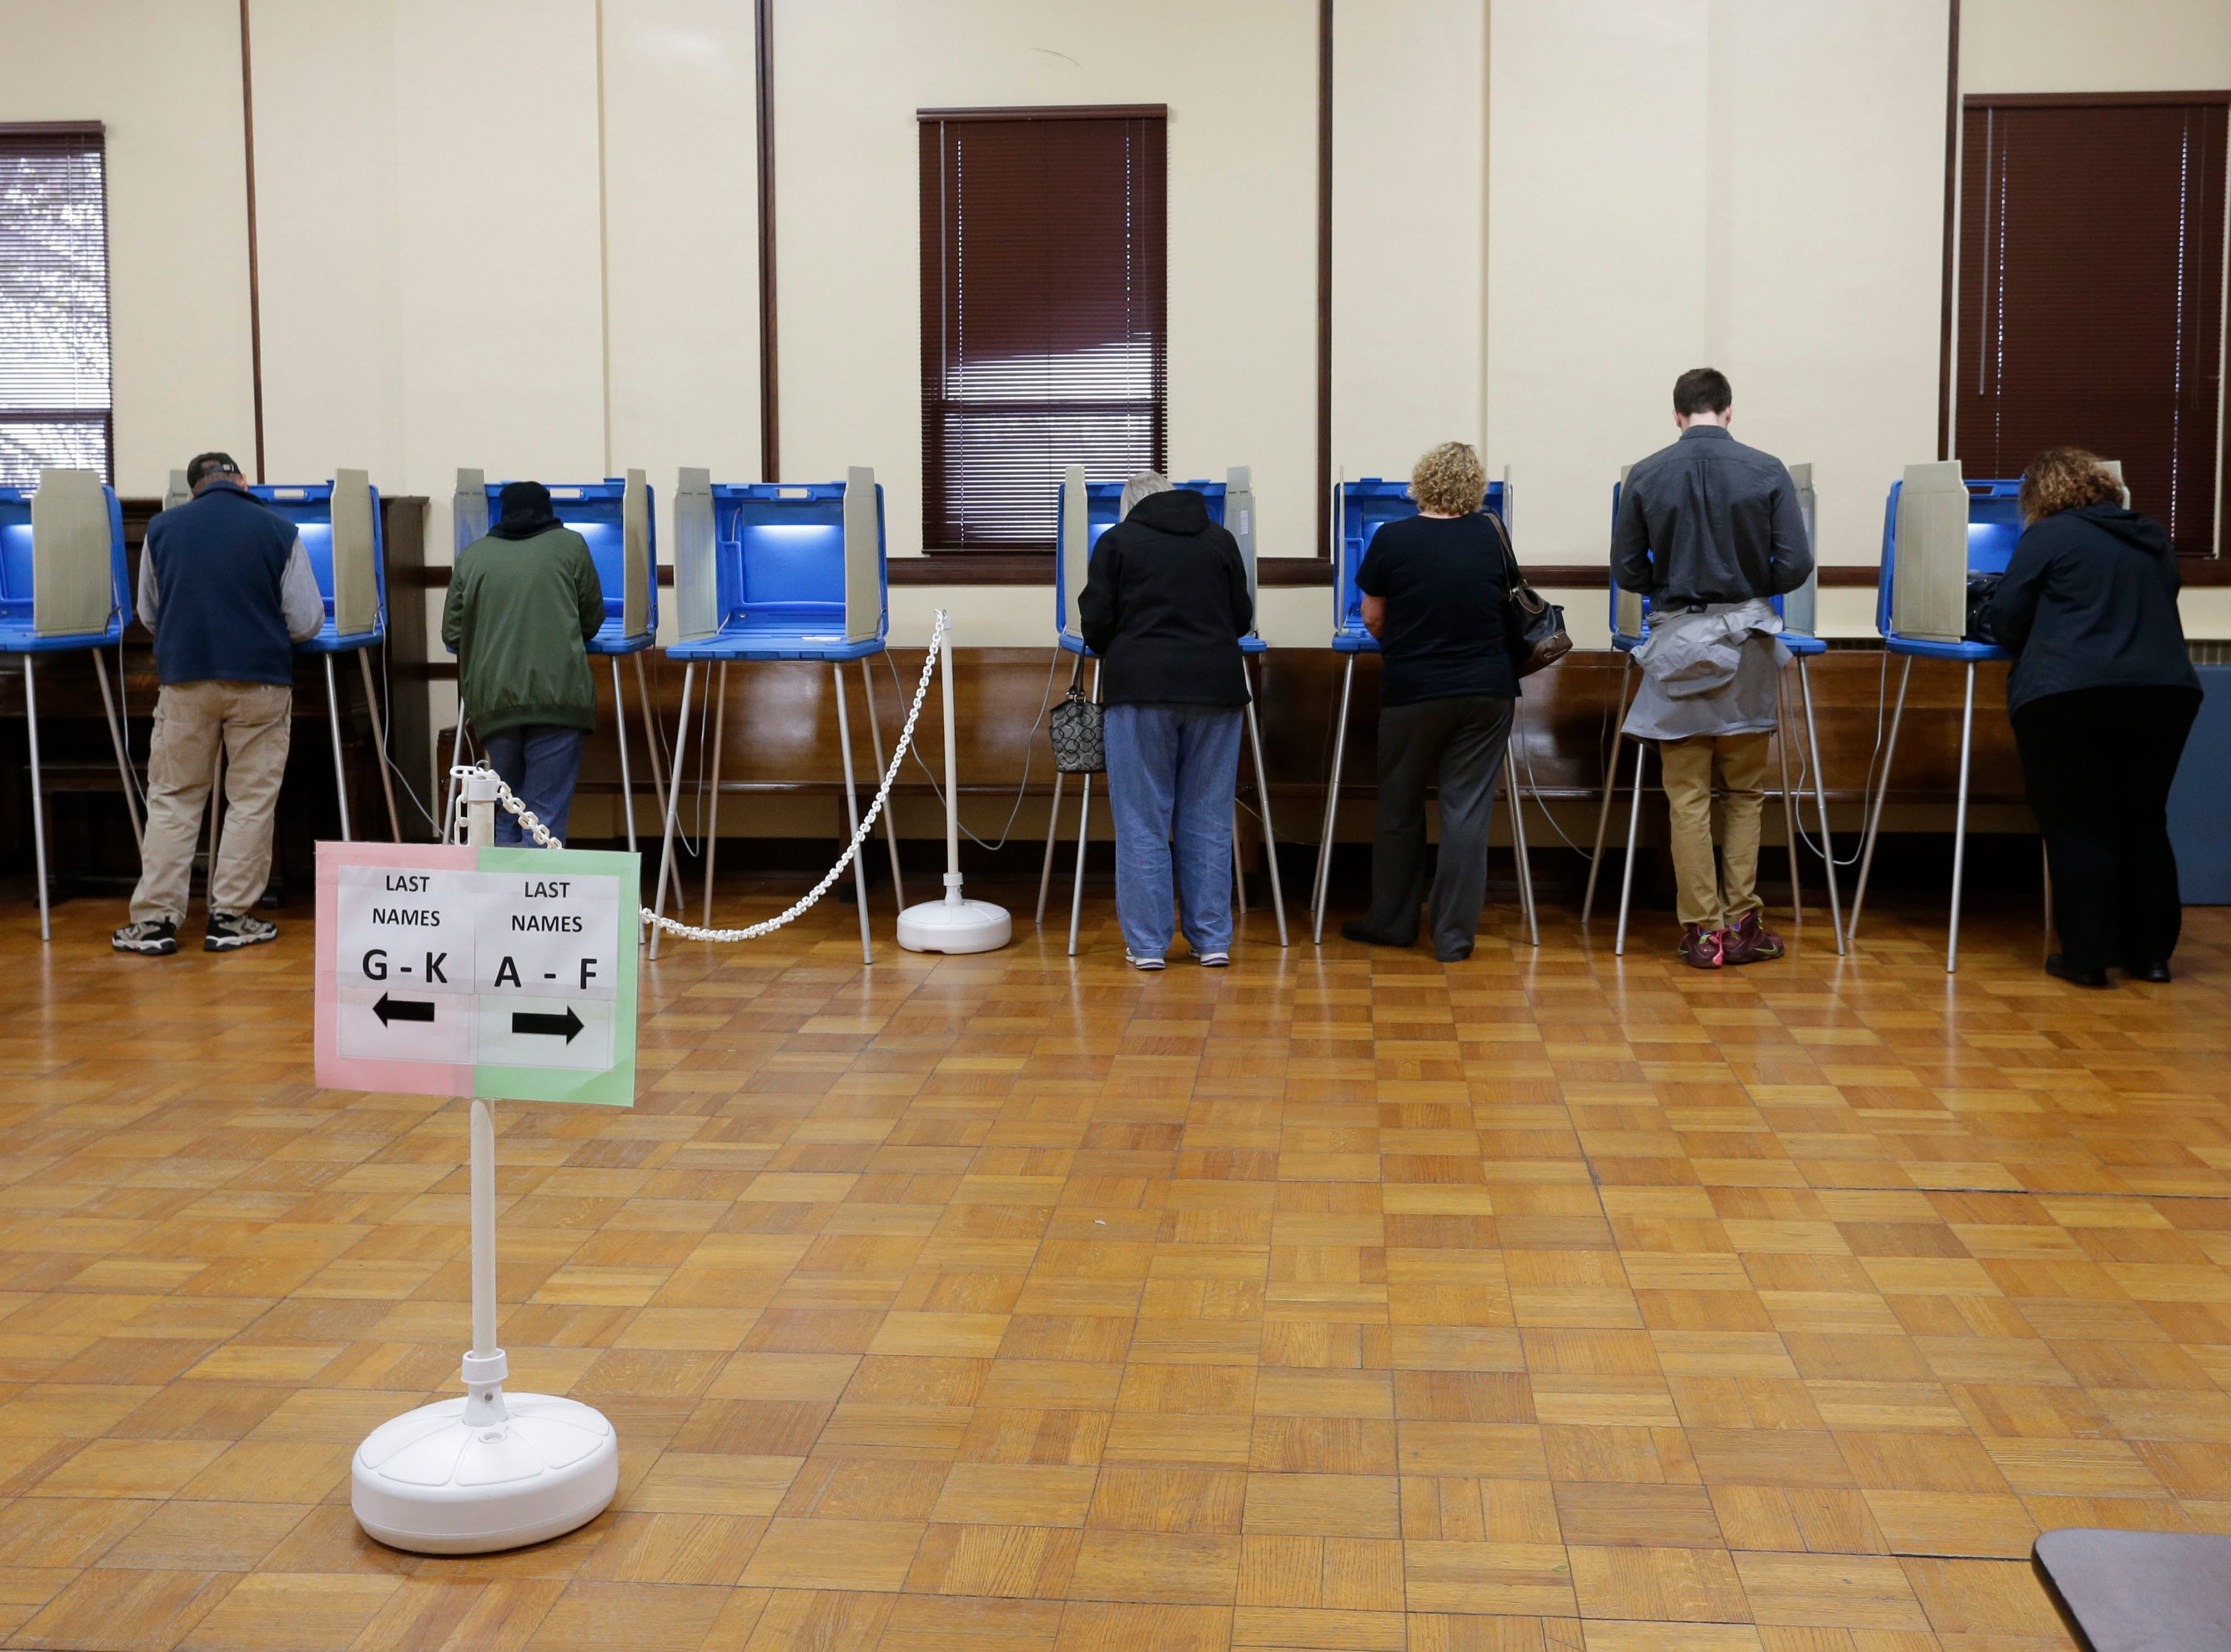 Voters at the polls at Plymouth City Hall, Tuesday, November 6, 2018, in Plymouth, Wis.